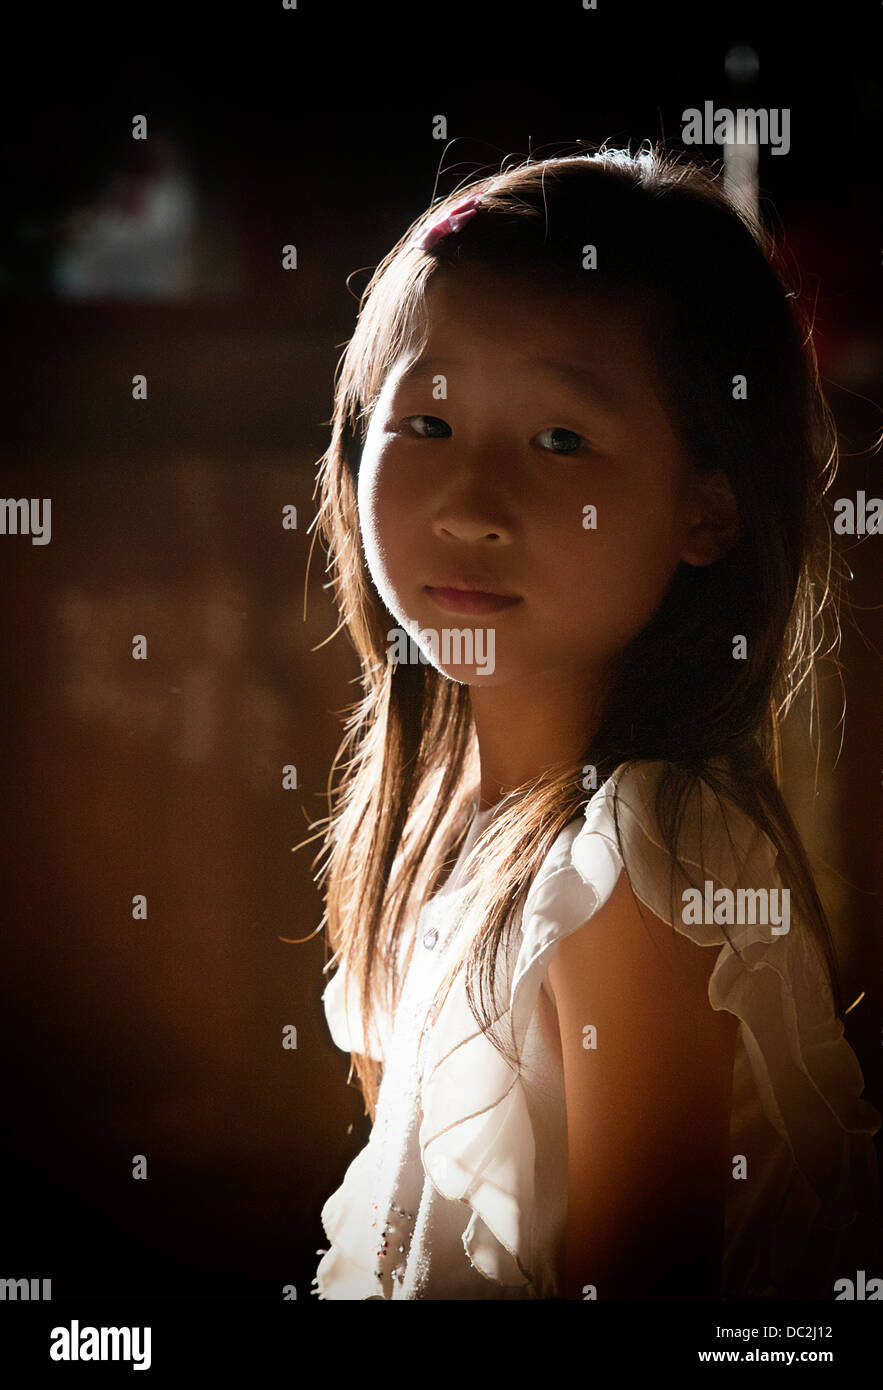 a Miao girl in backlighting - Stock Image